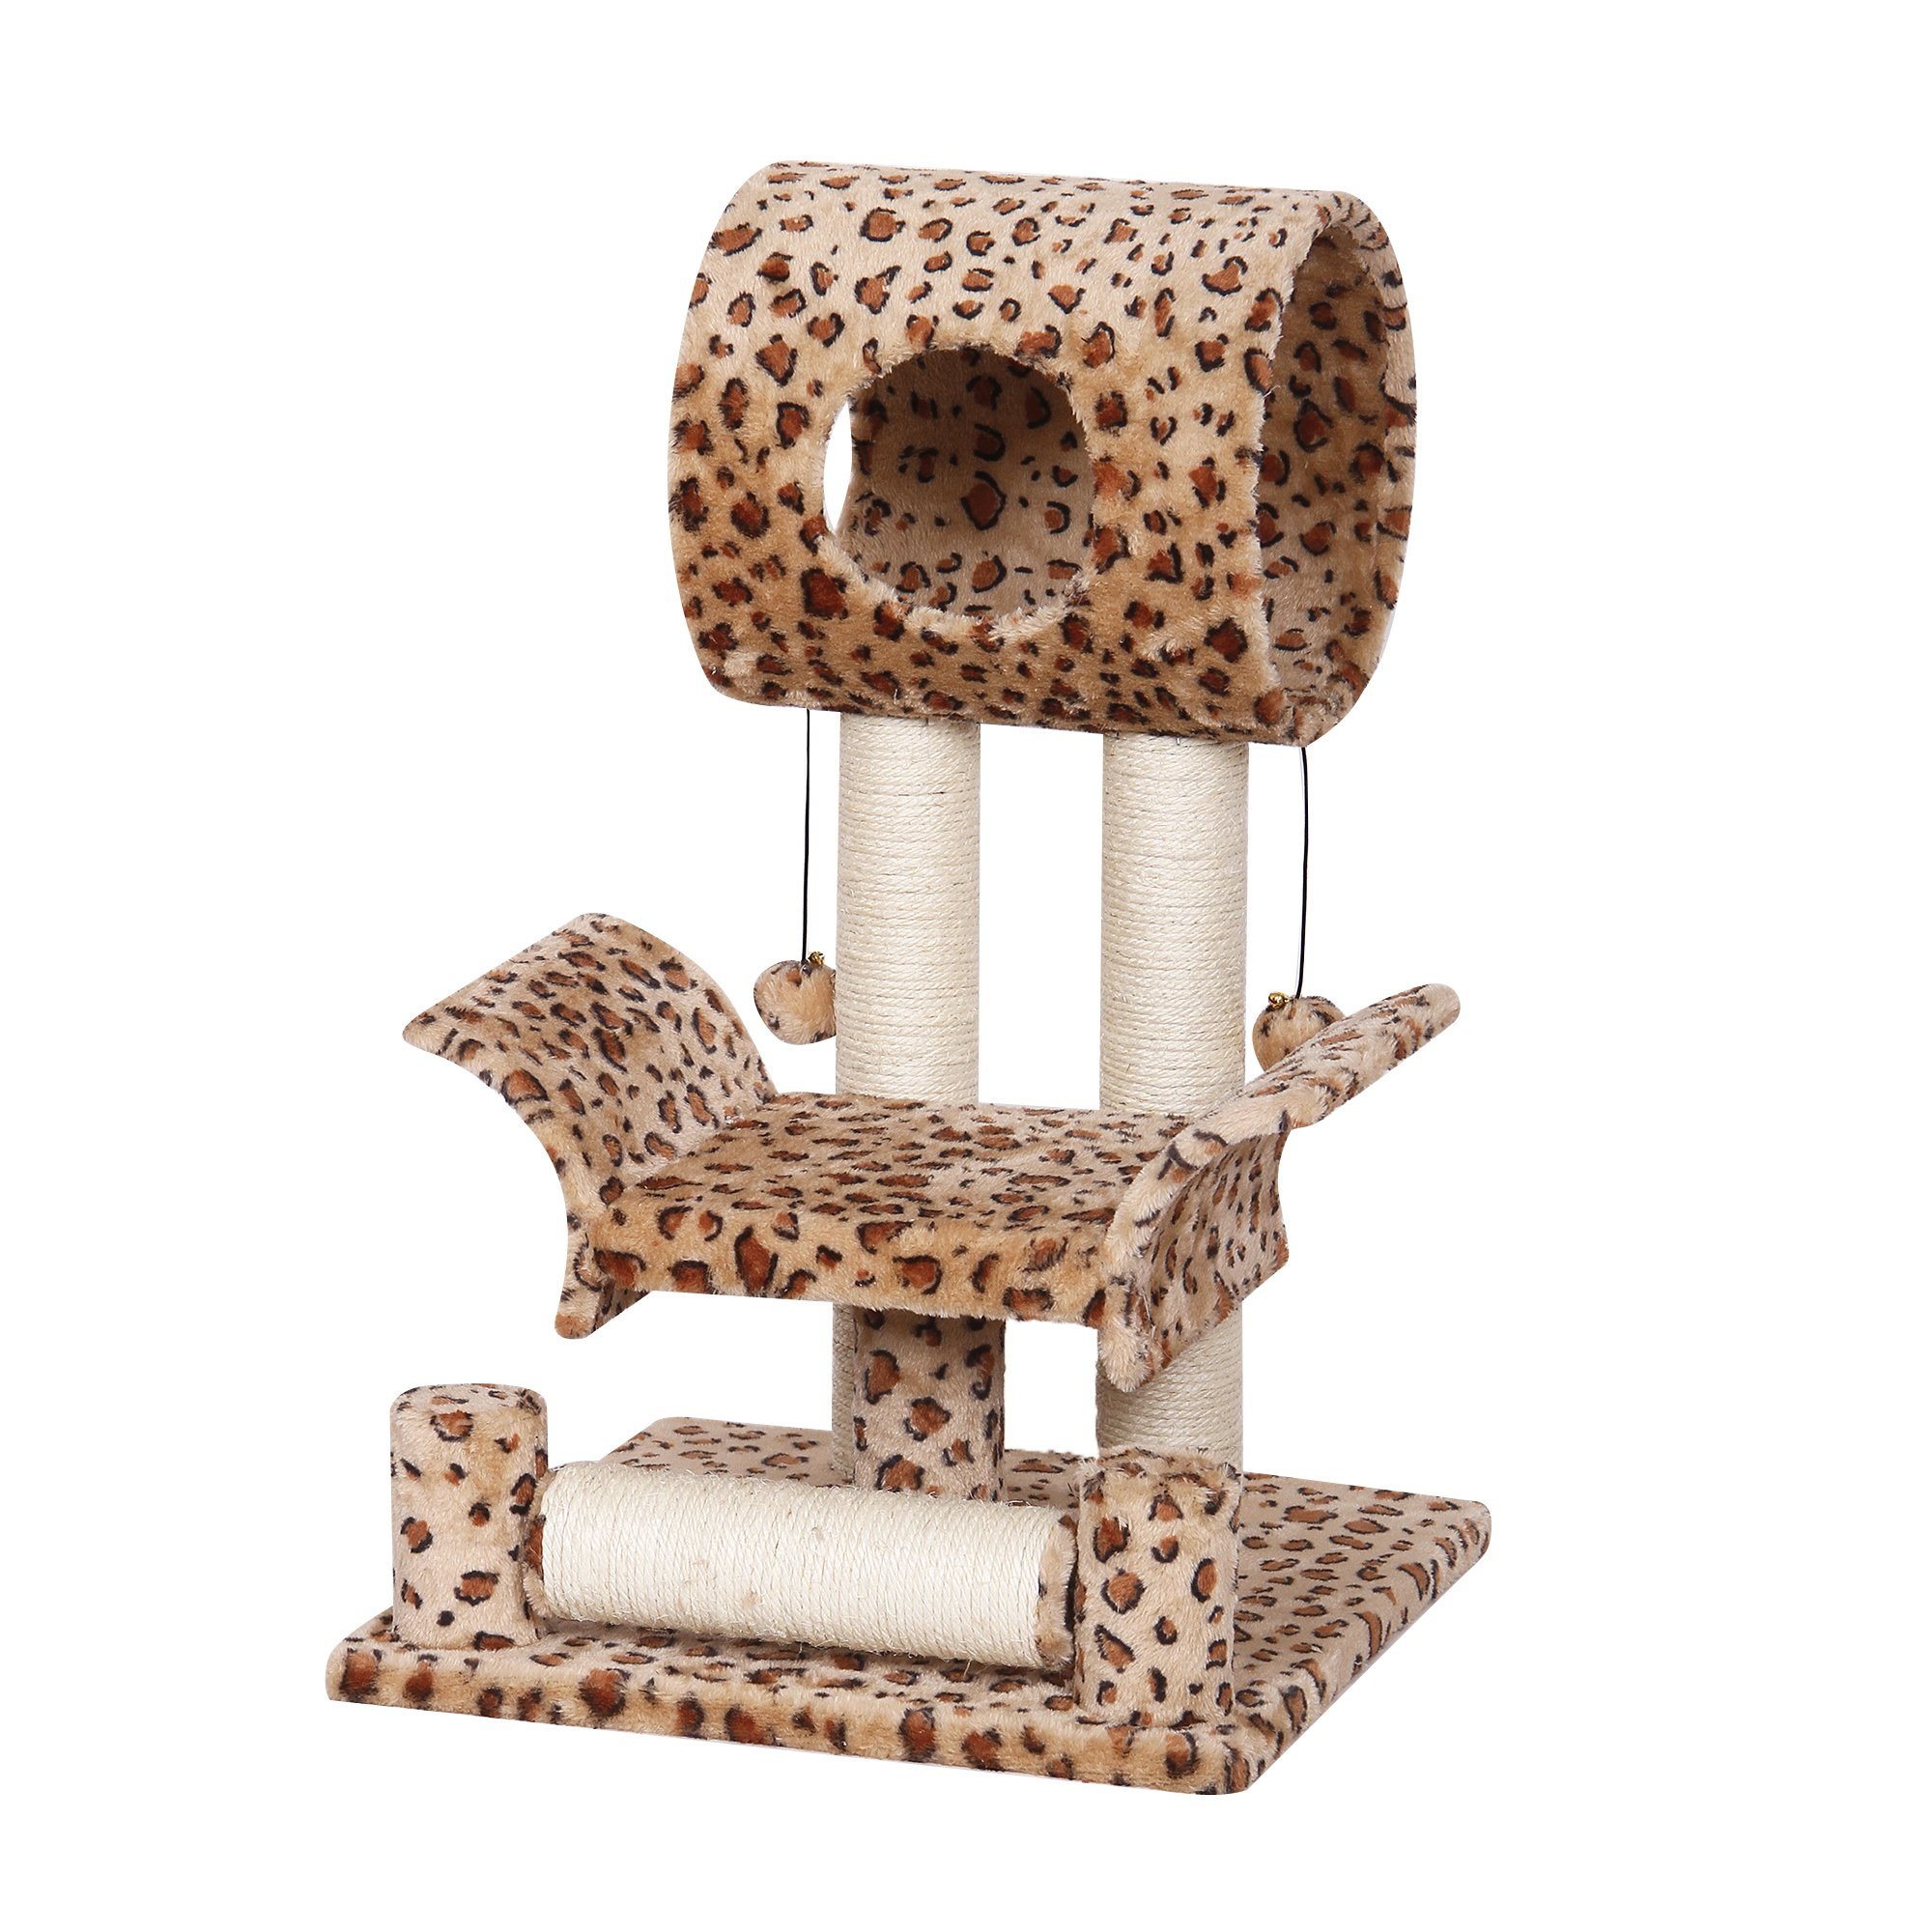 Catry Leopard Print Cat Tree Condo House, 18'' x 18'' x 28'', Brown